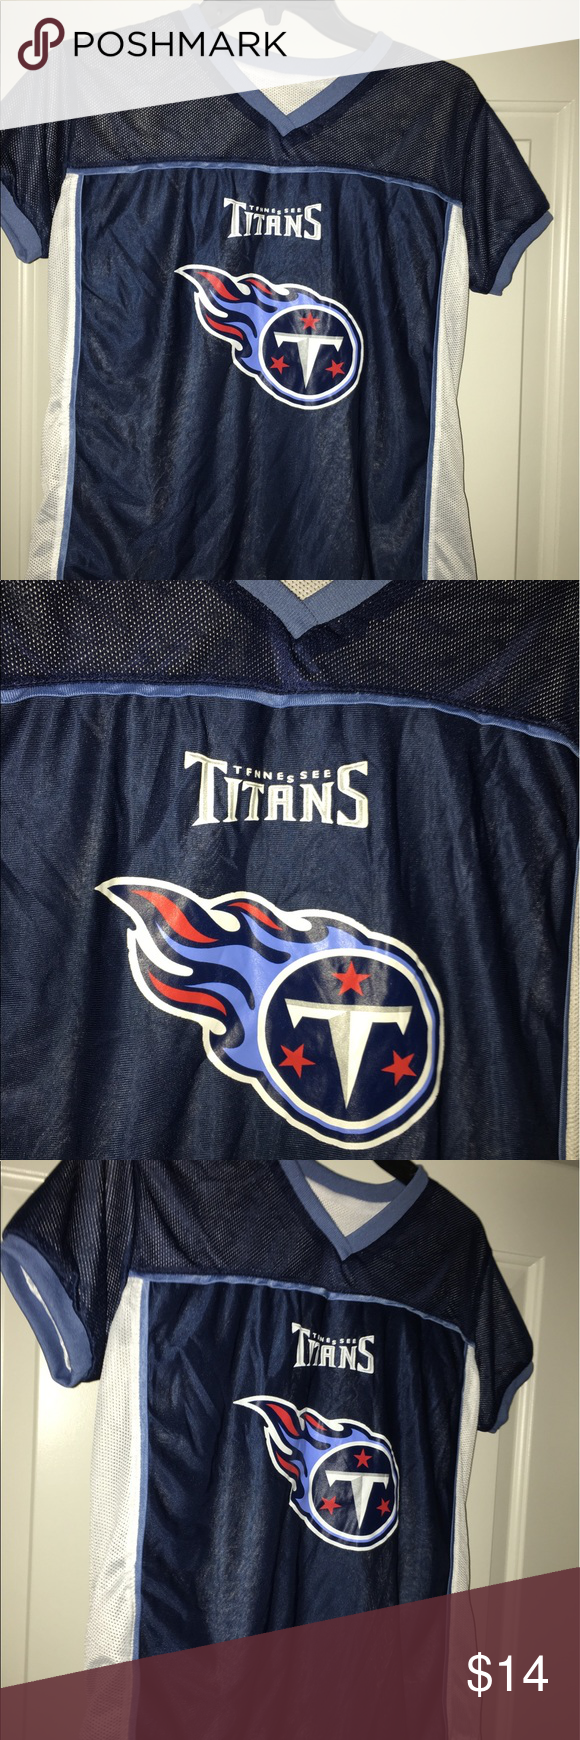 dad25e66f Tennessee Titans reversible flag football jersey Thank you for viewing my  listing